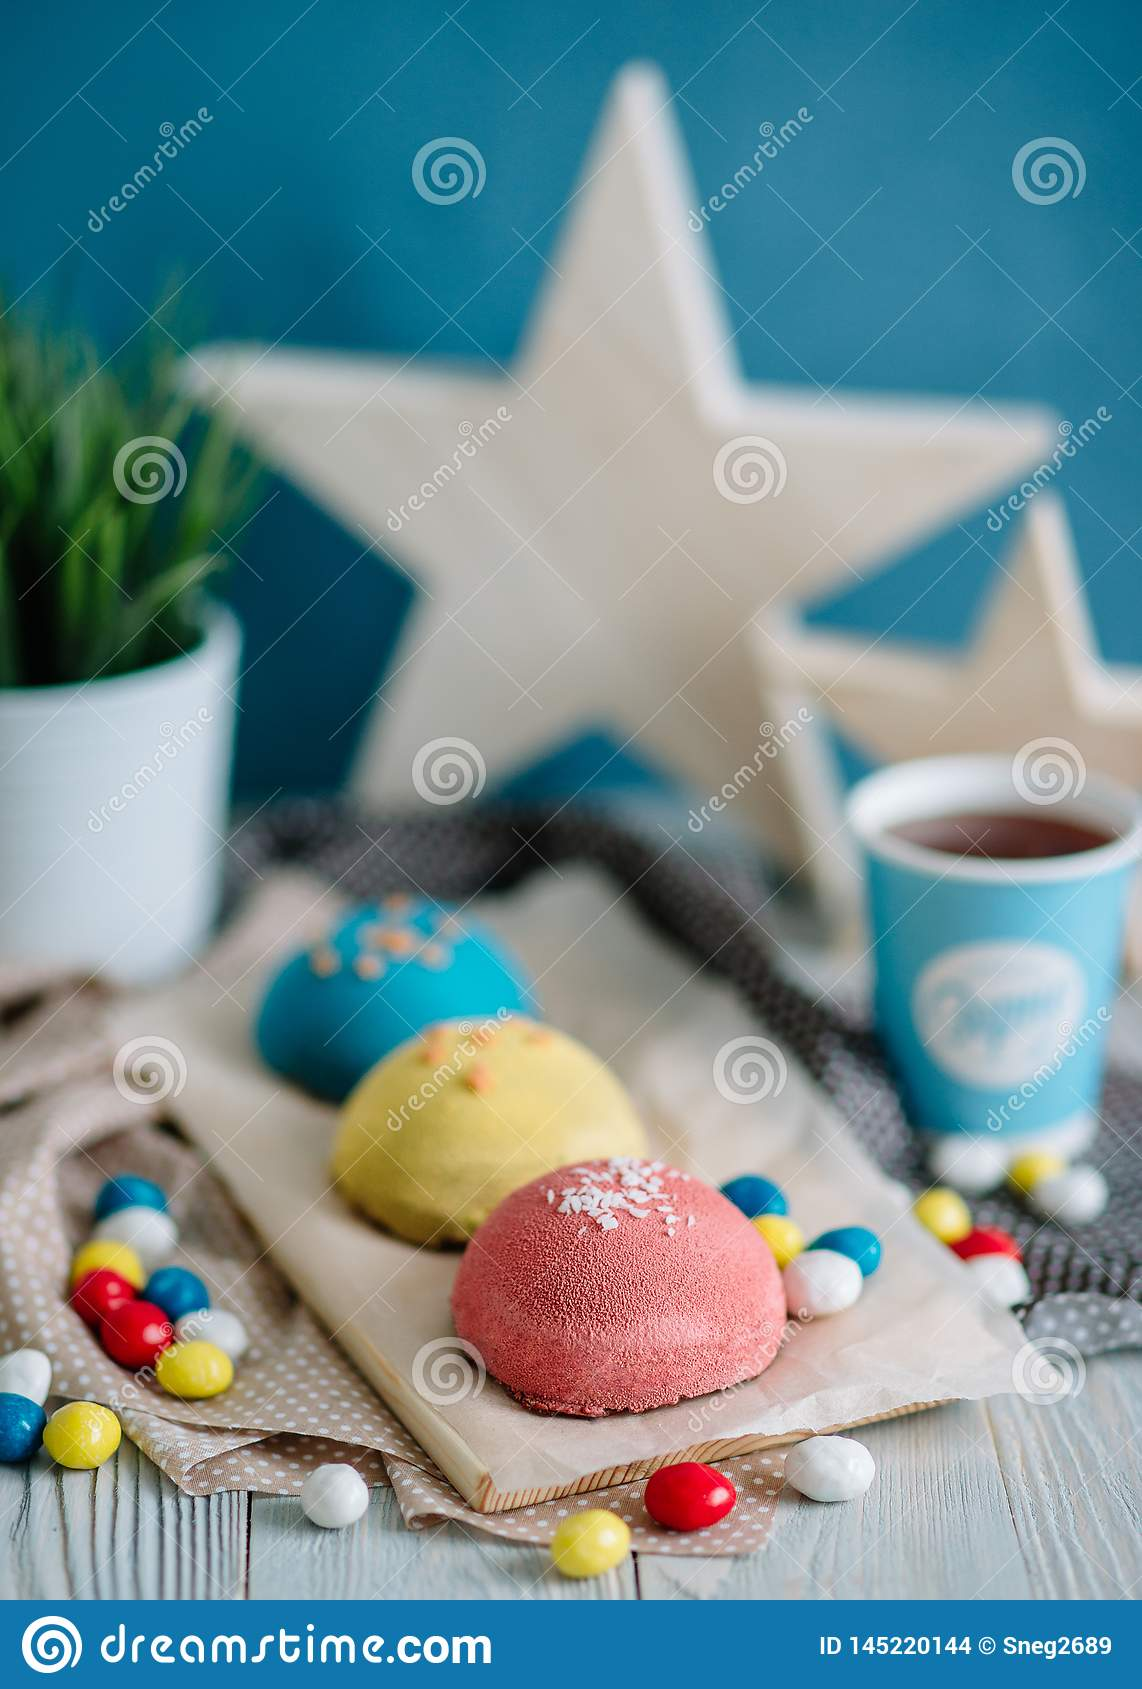 Cakes of different colors in still life